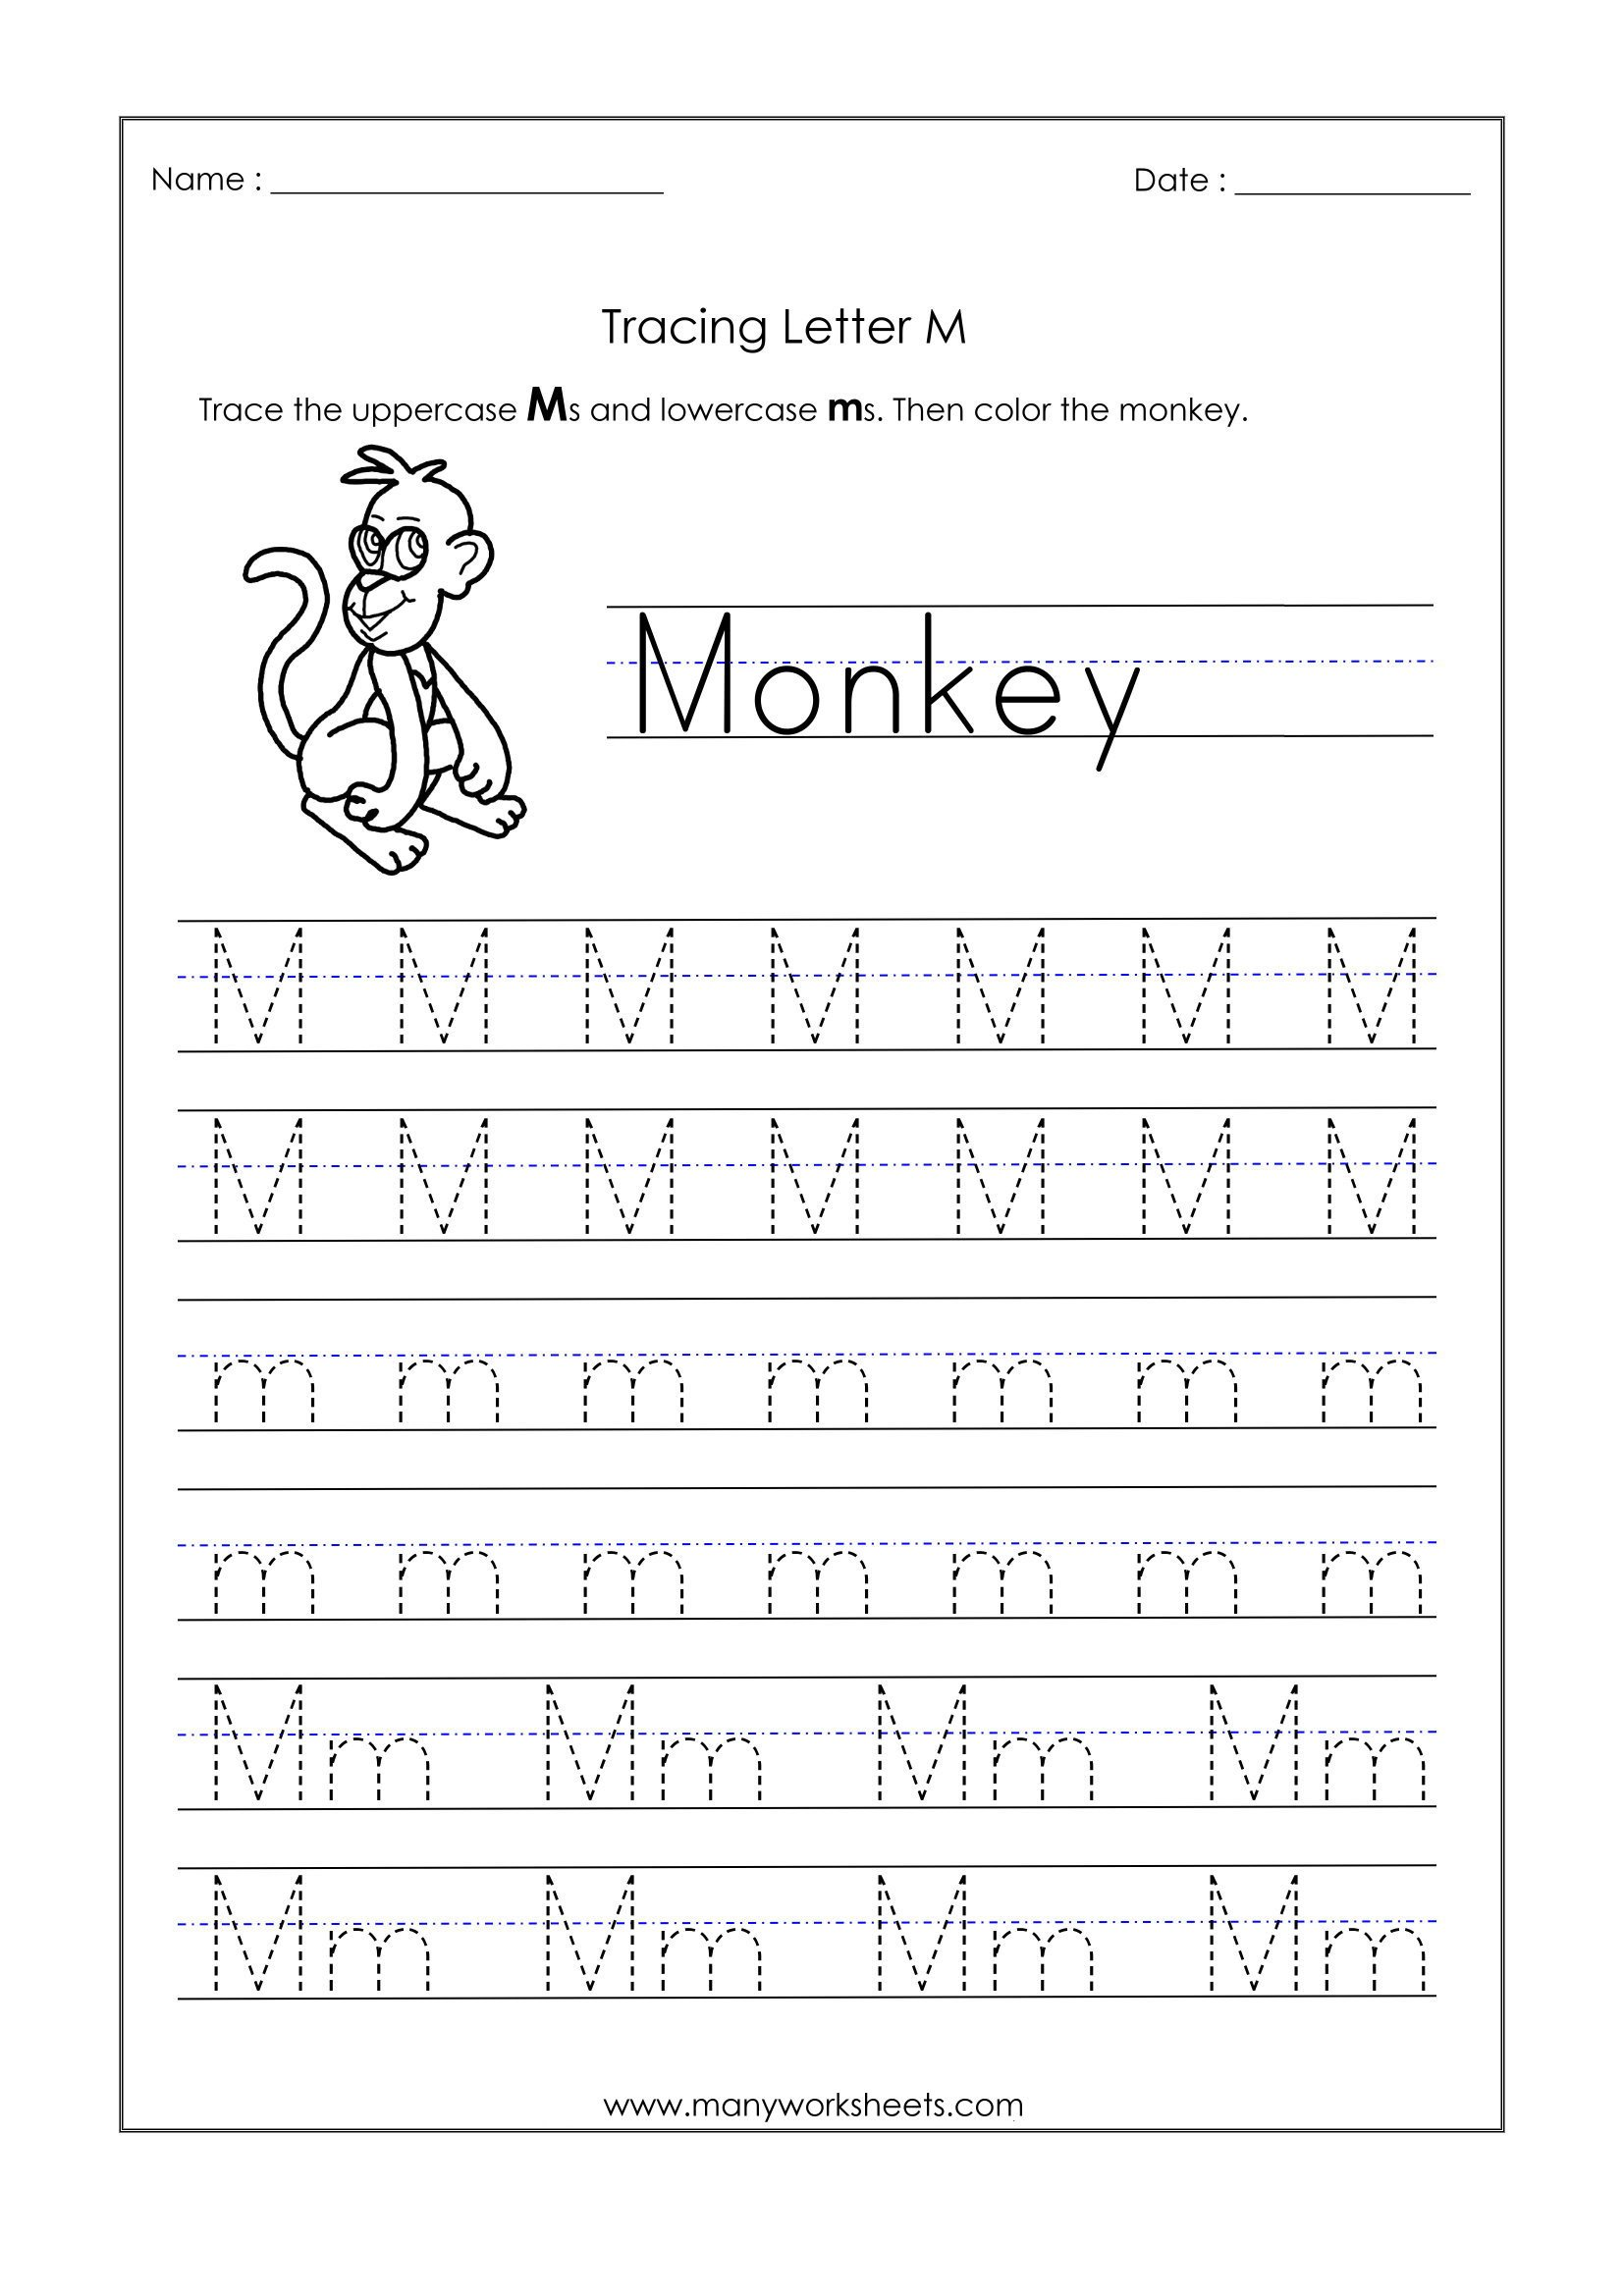 M Worksheets Preschool Math Worksheet 42 Kindergarten Tracing Worksheets Picture